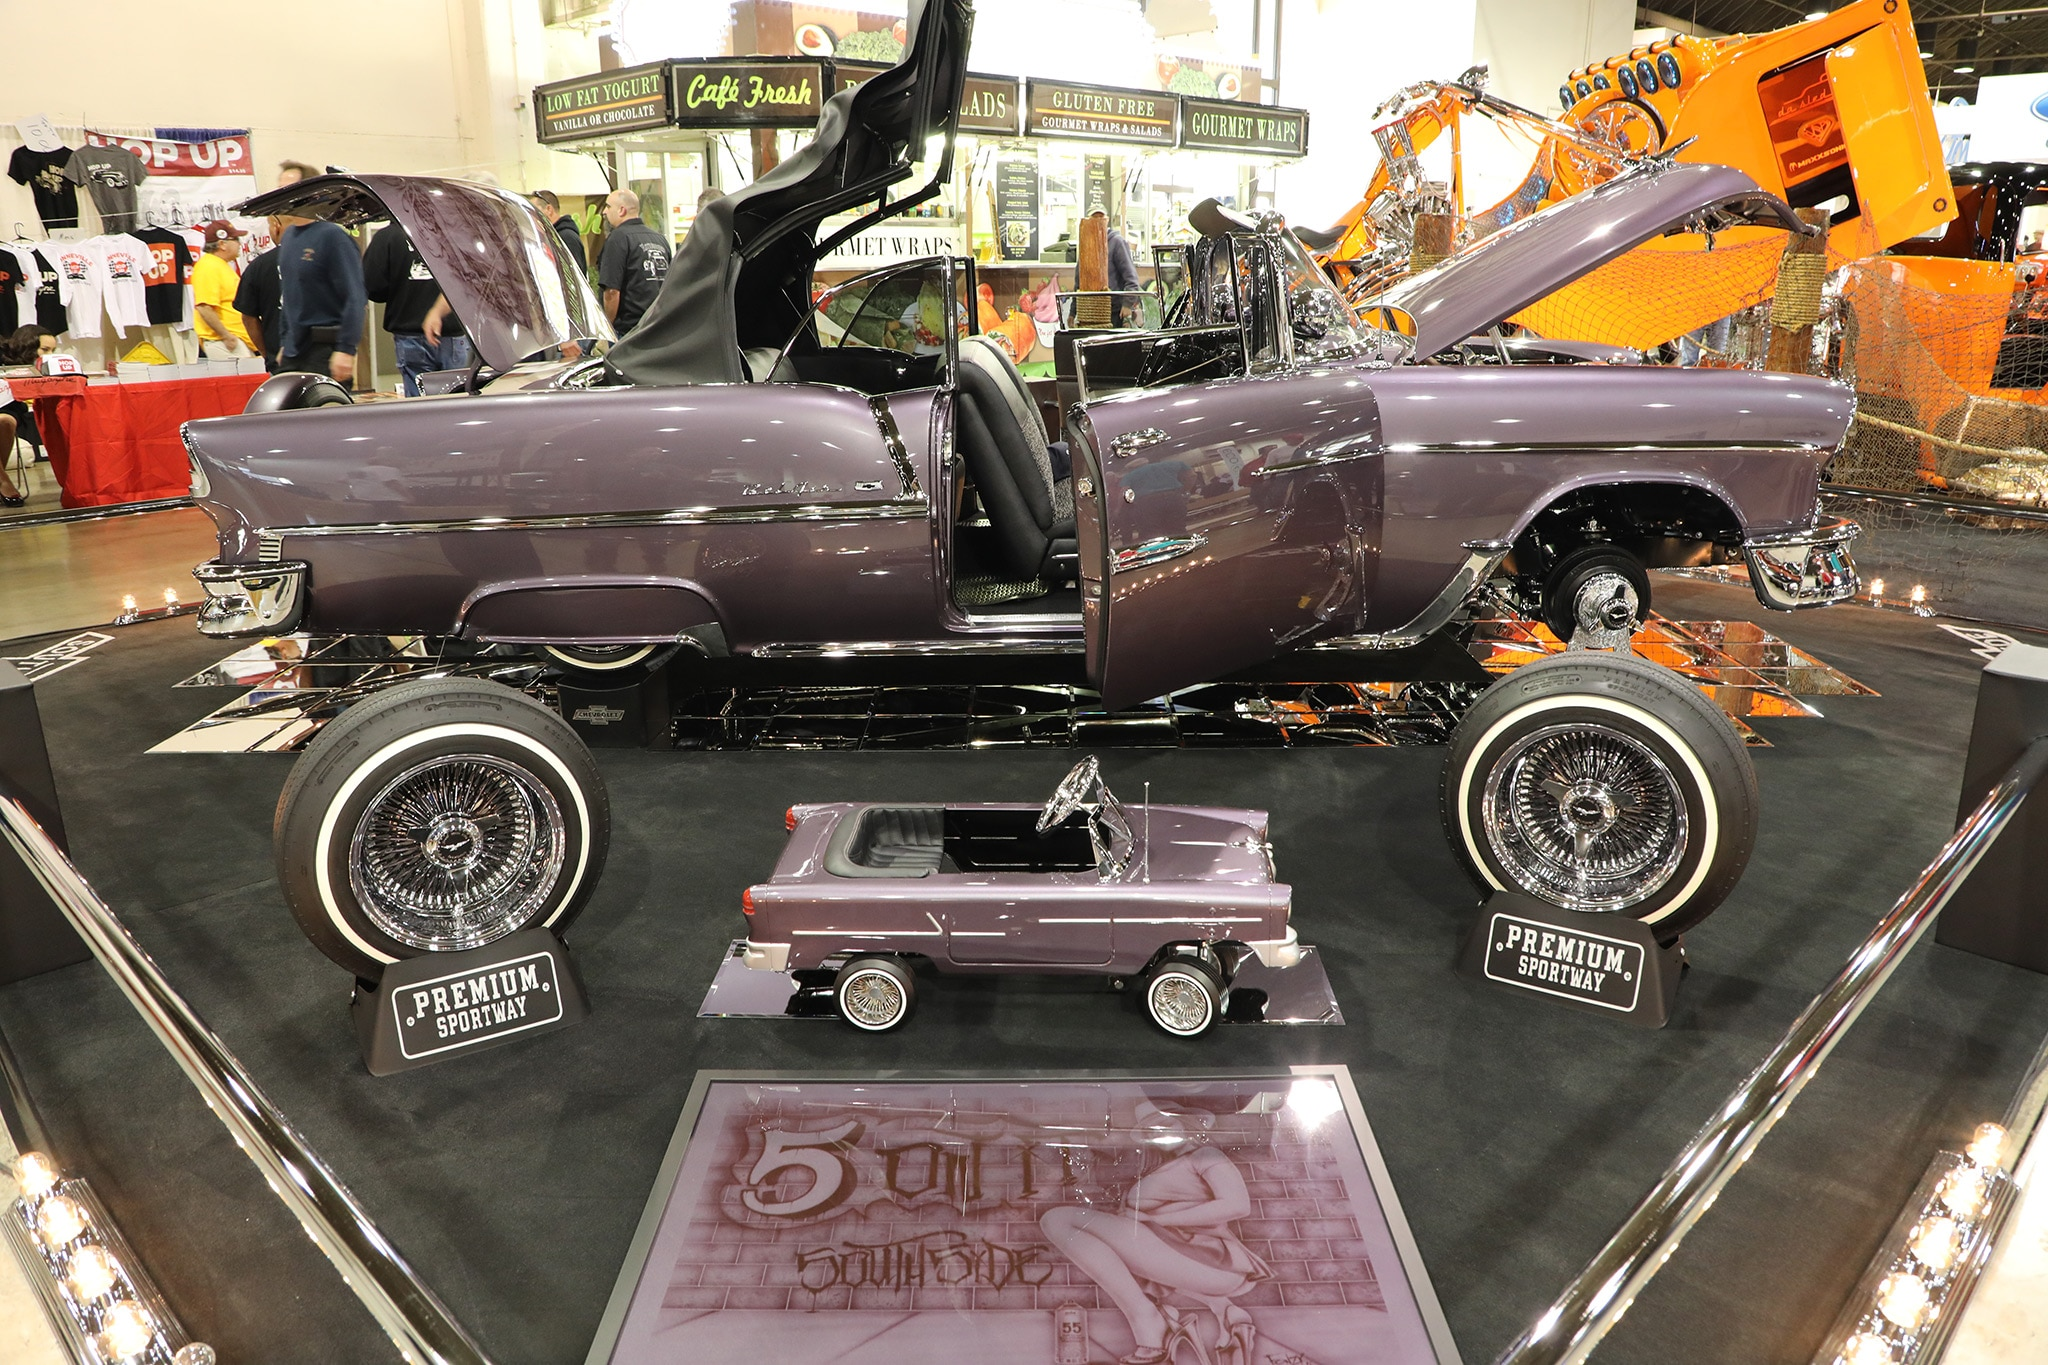 Americas Most Beautiful Roadster Crowned At Grand National - Lowrider car show 2018